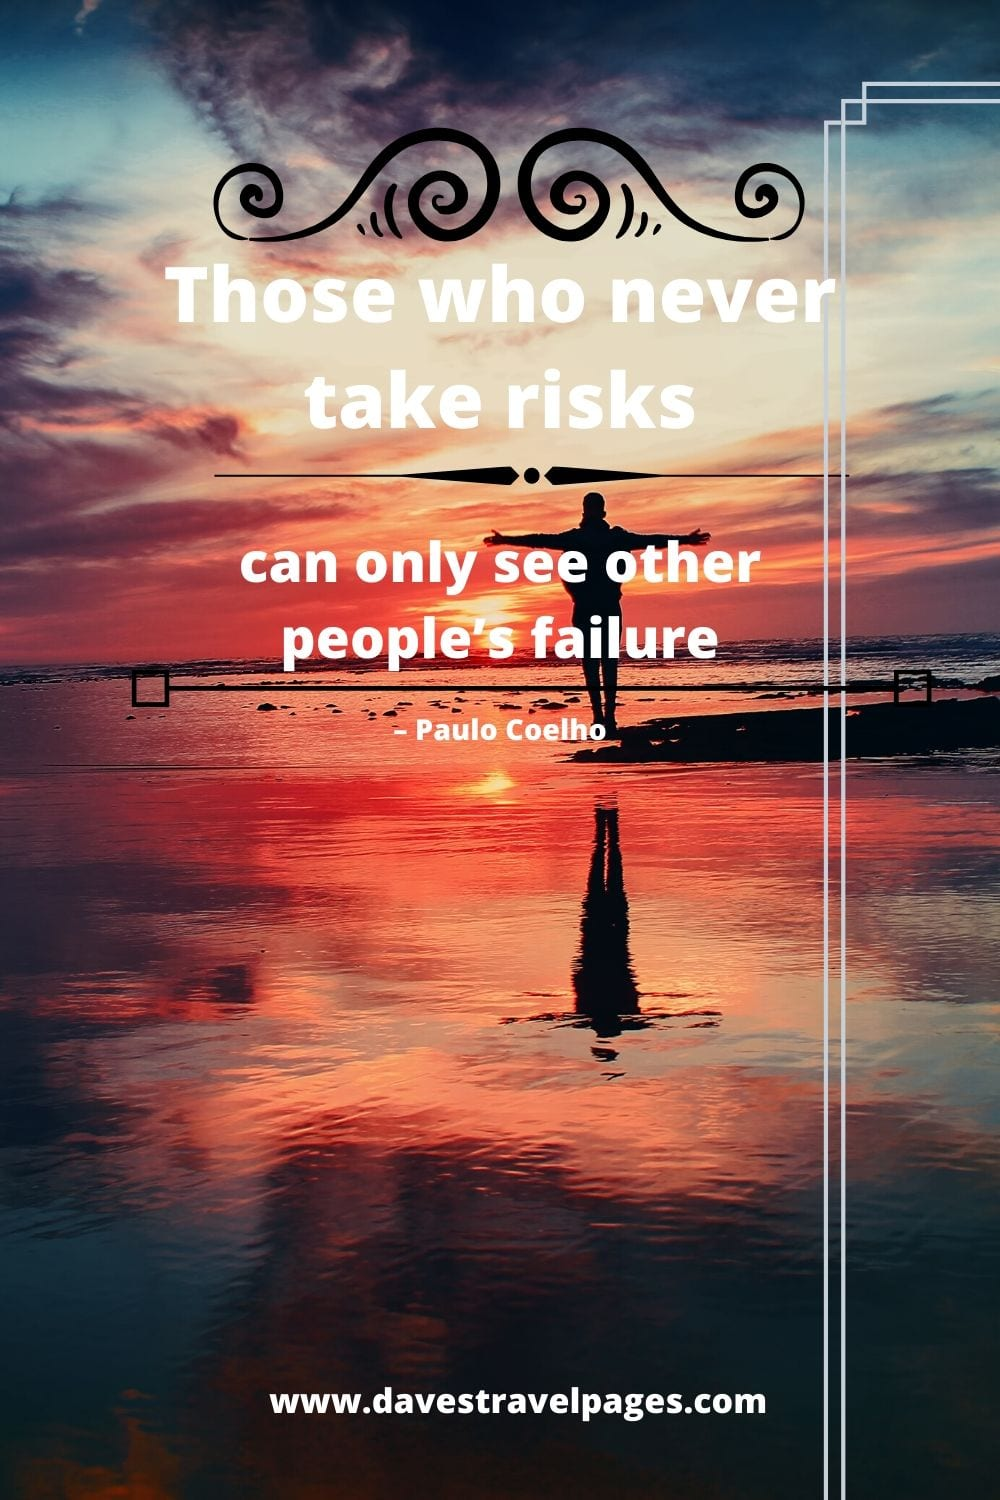 """Those who never take risks can only see other people's failures."" – Paulo Coelho"